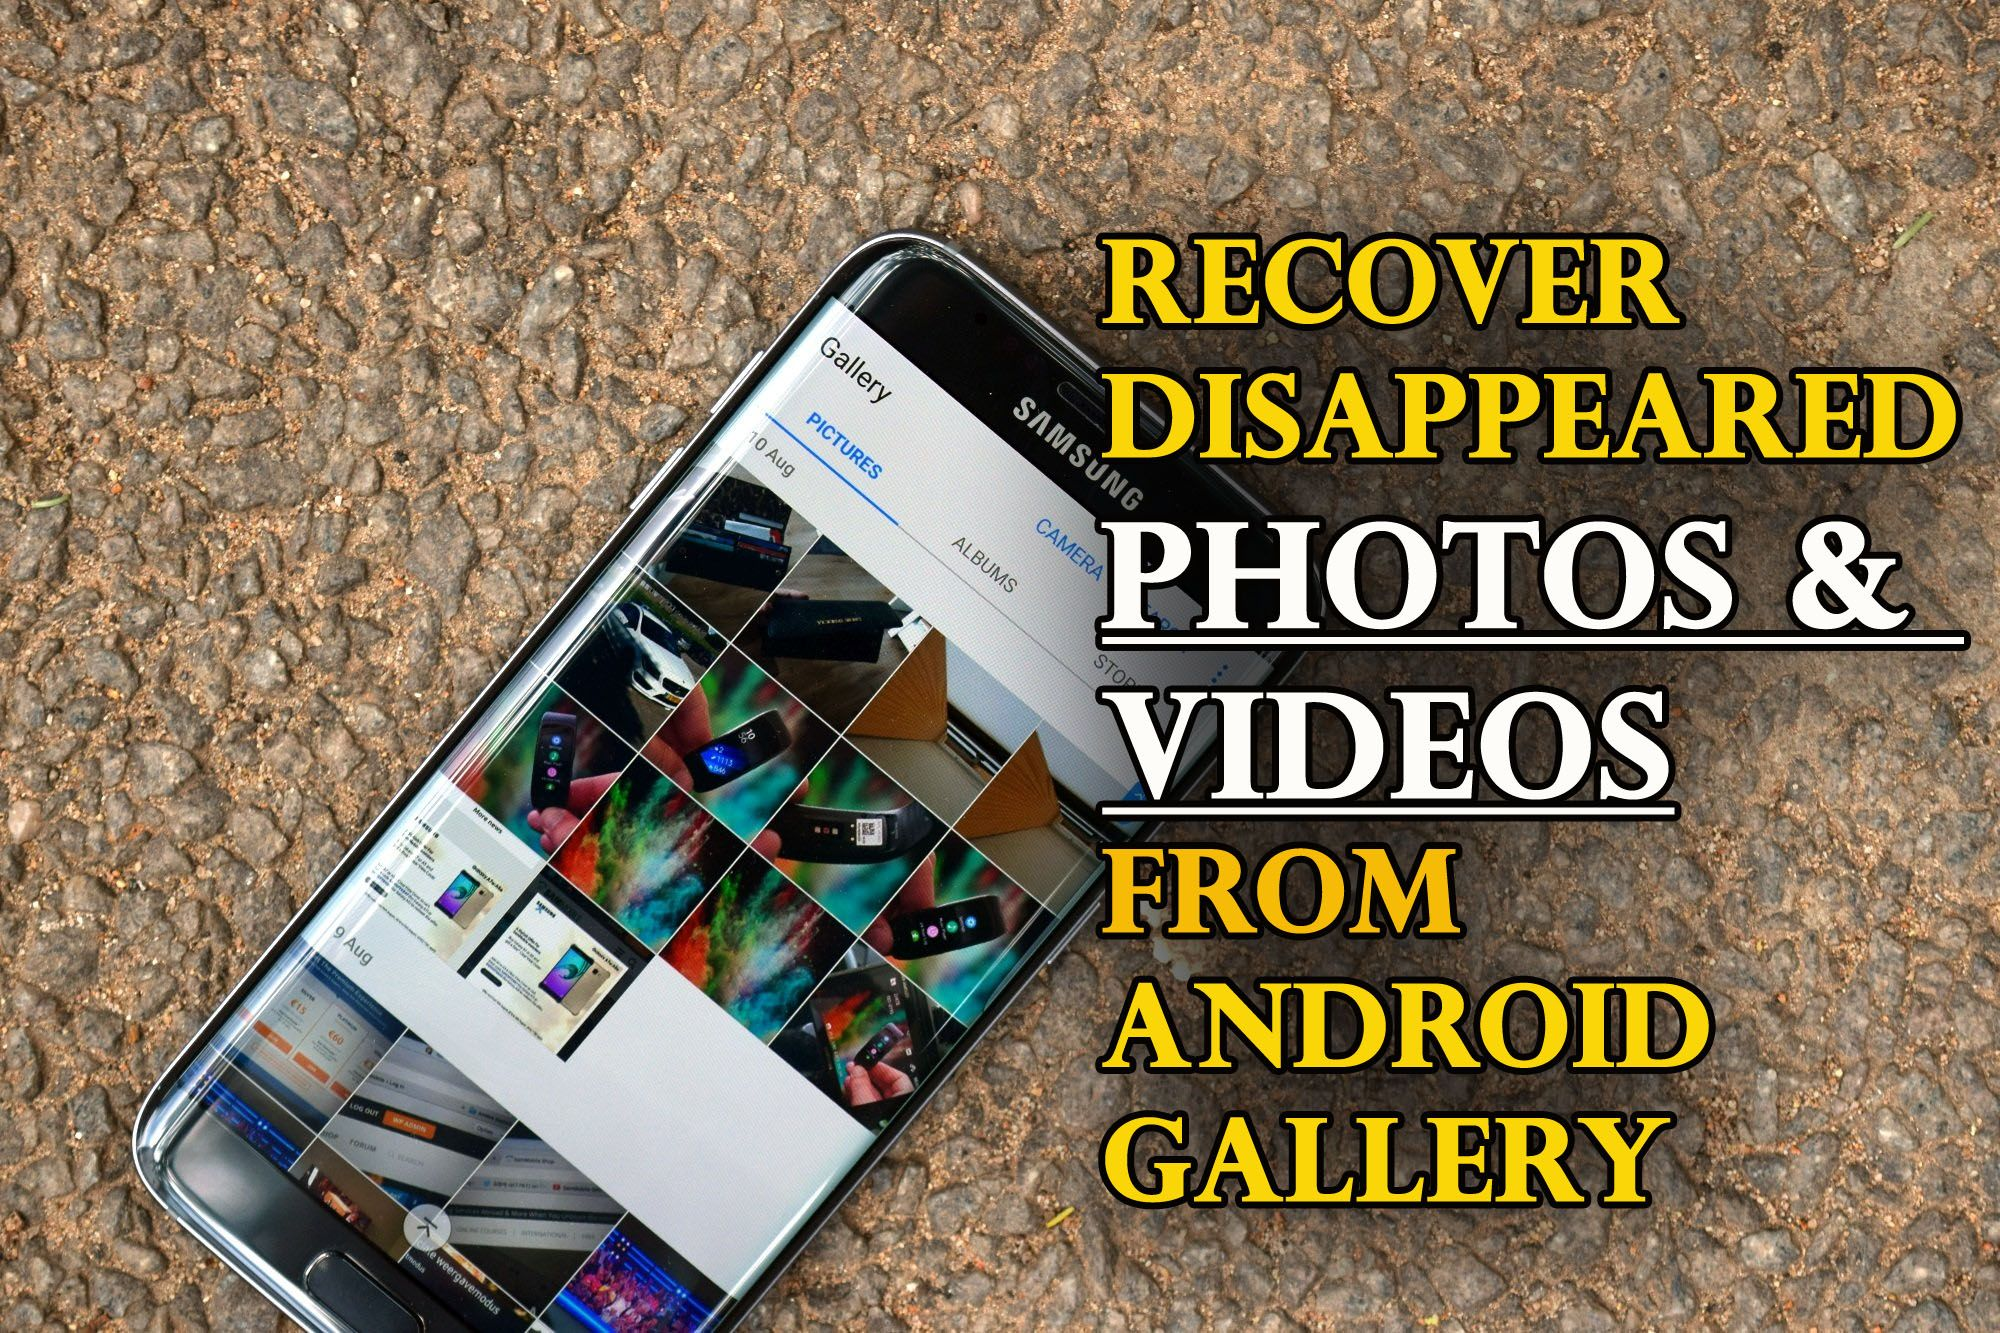 Find & Recover Disappeared Photos & Videos from Android